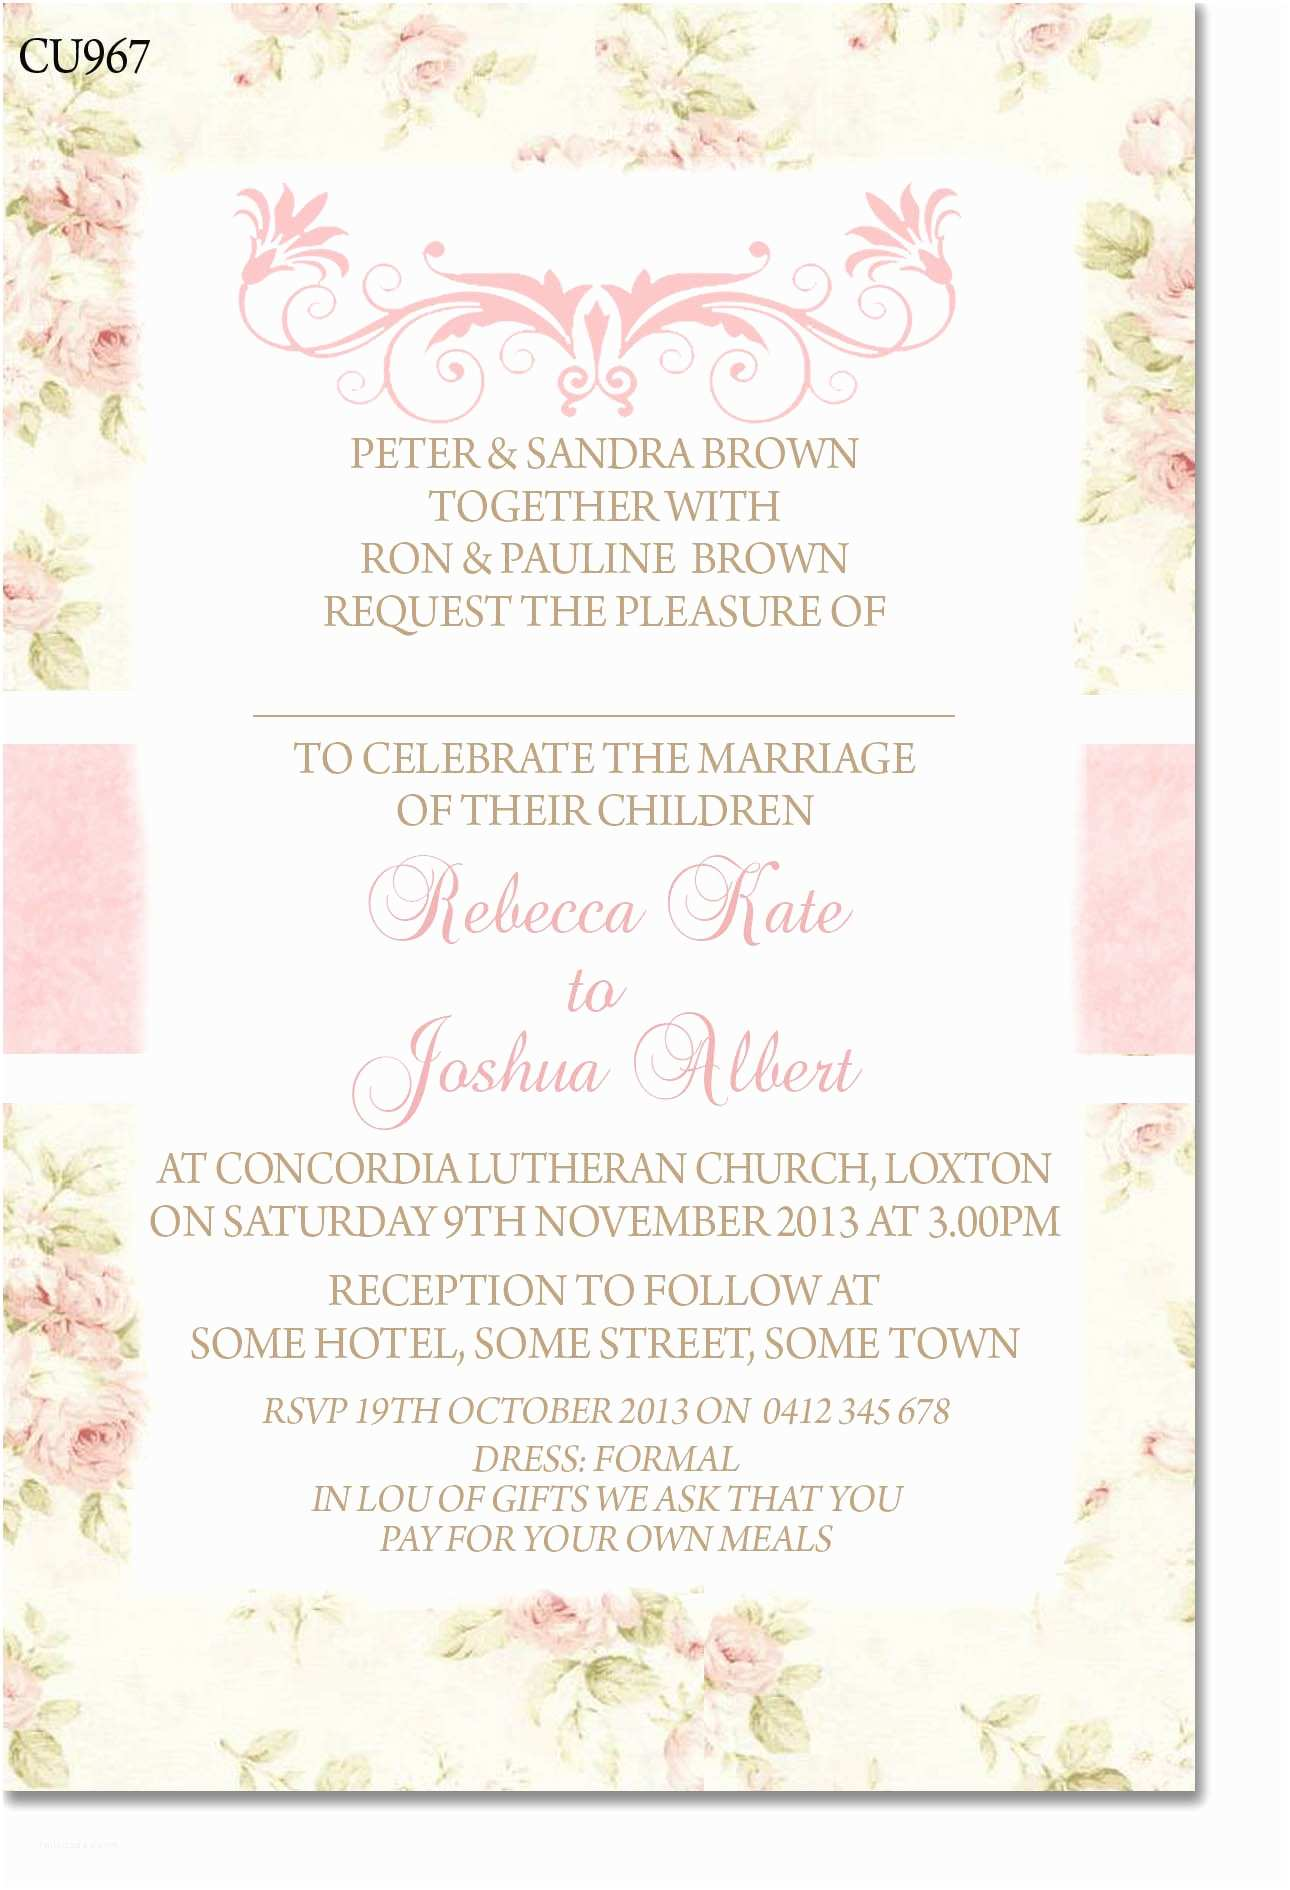 Shabby Chic Wedding Invitations Cu967 Shabby Chic Wedding Invitation